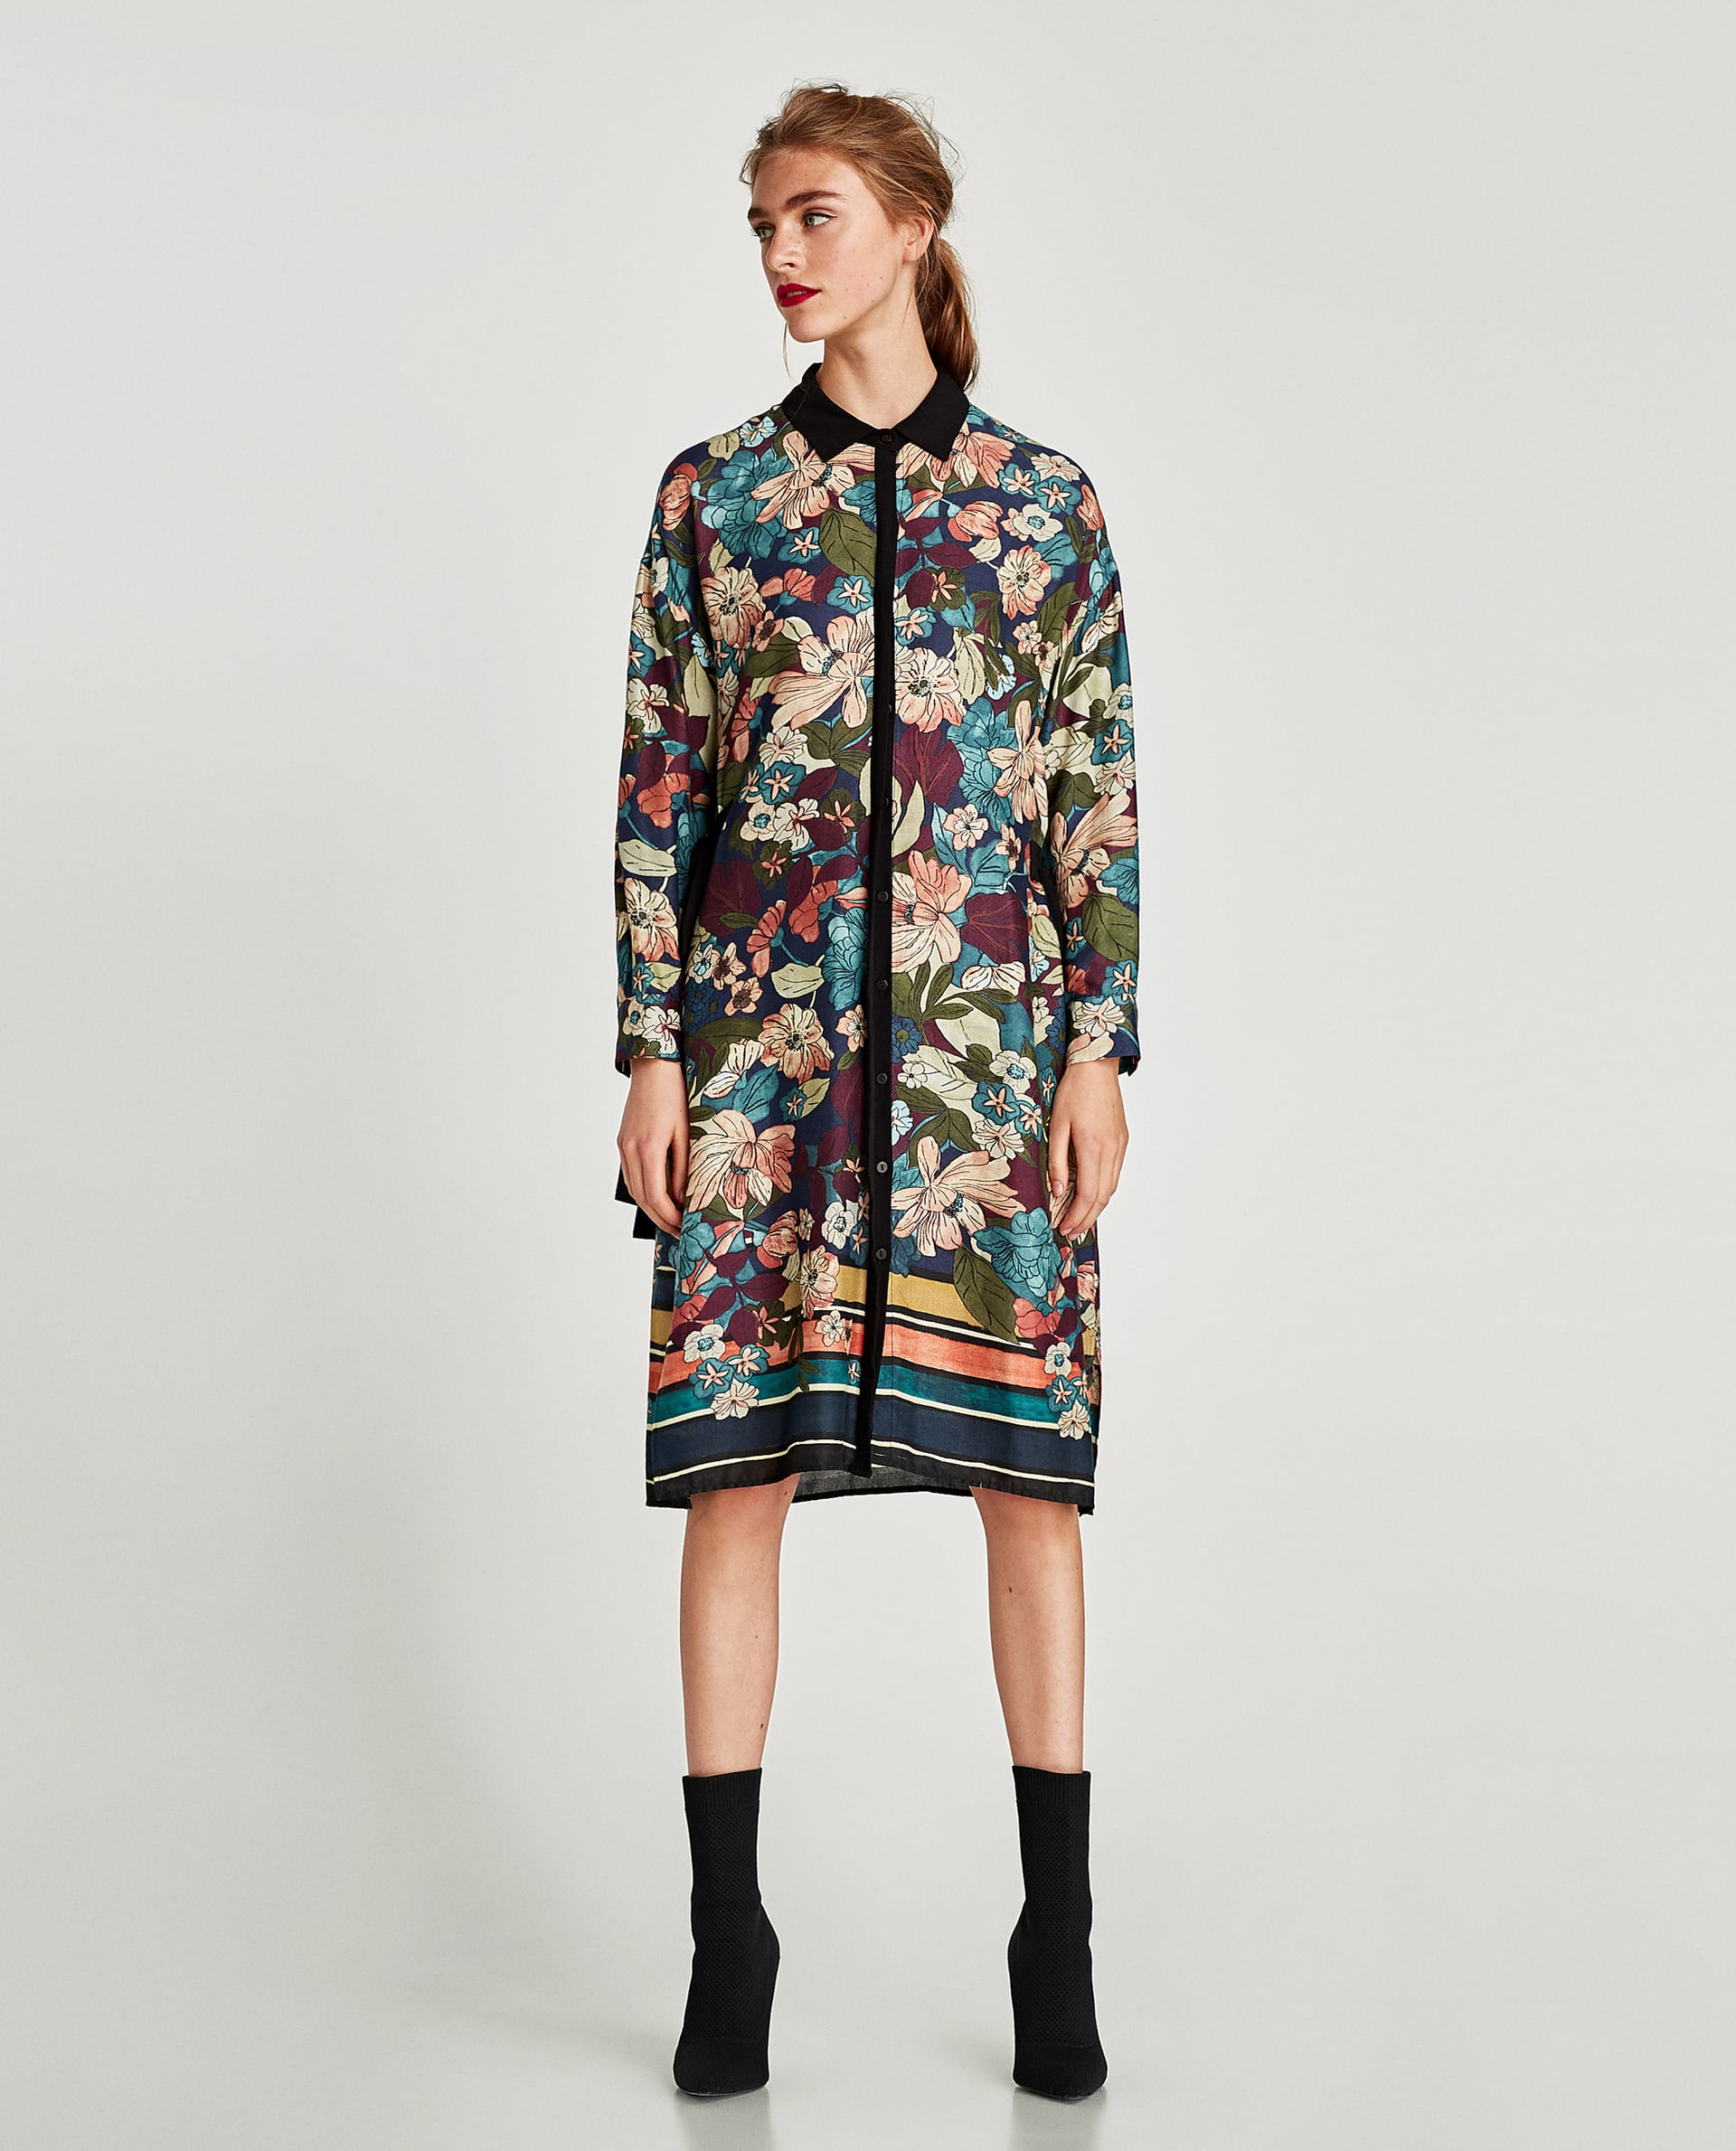 df4276a66d9 Zara - floral tunic with contrasting bows - Dresscodes